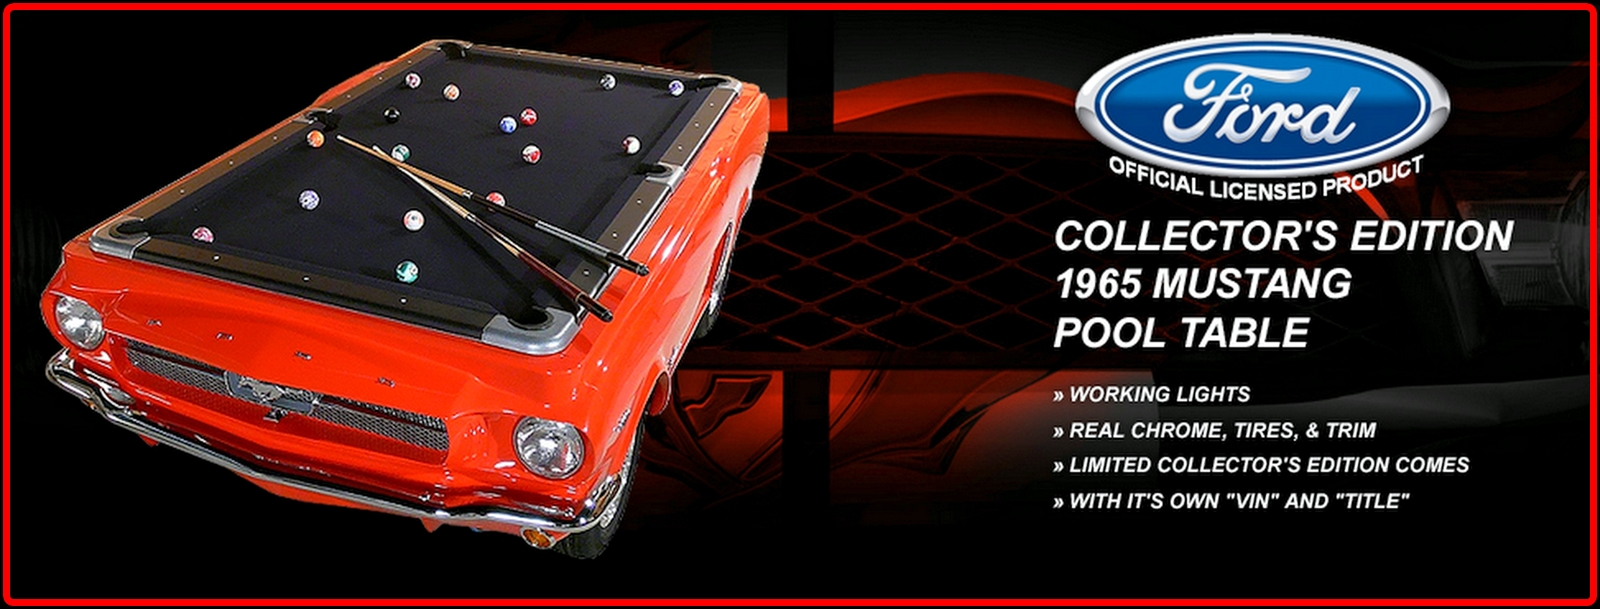 Charming The Collectoru0027s Edition Car Pool Tables...Mustang, Shelby U0026 Corvette Photo Gallery